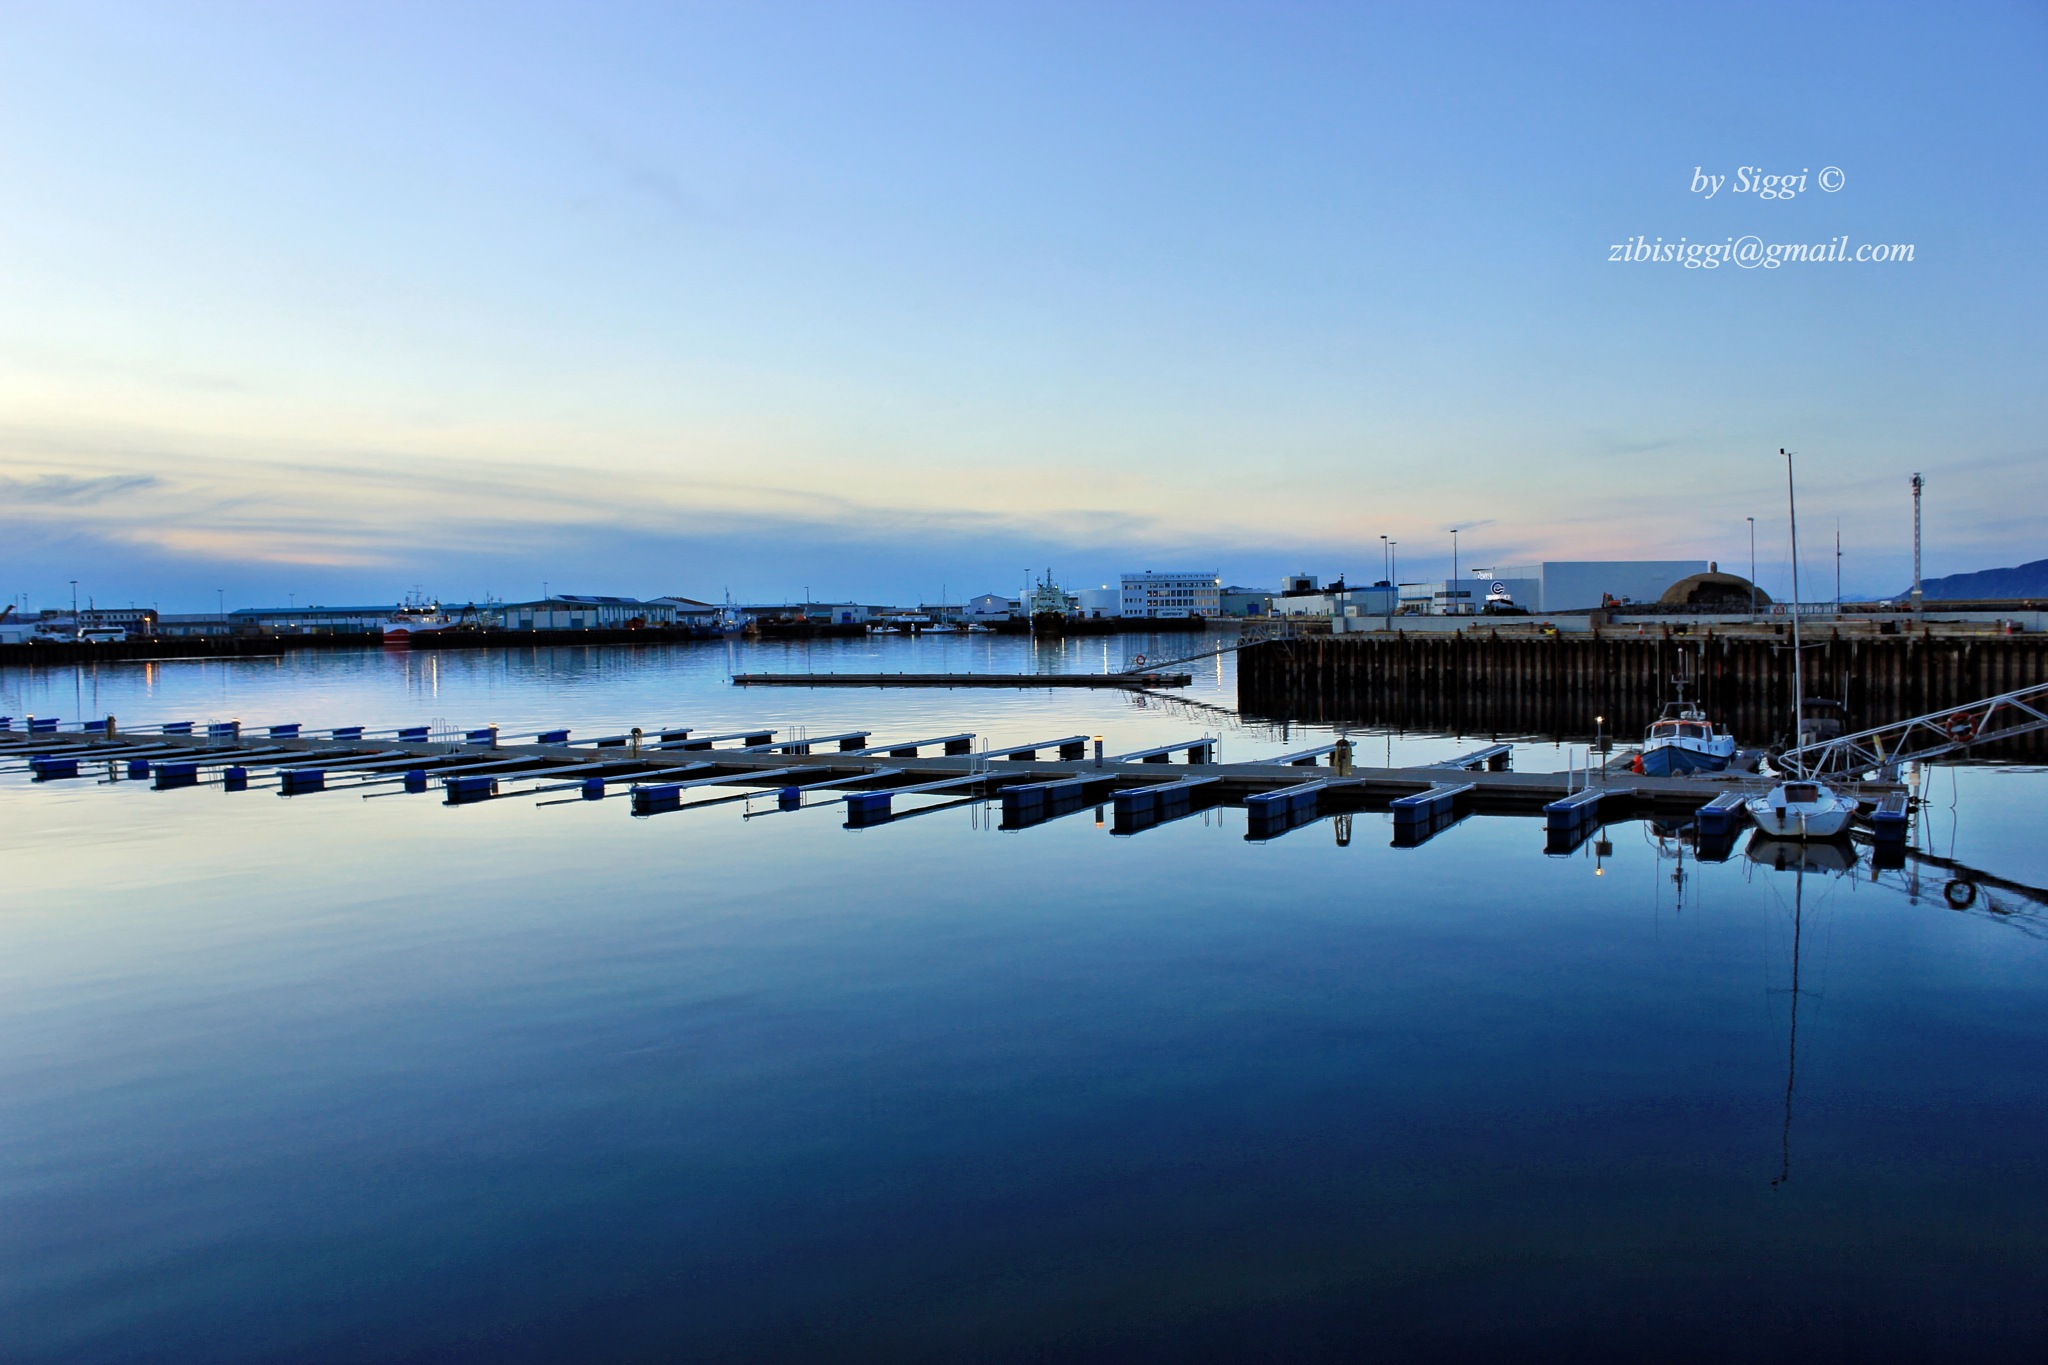 Harbor by Zbigniew©